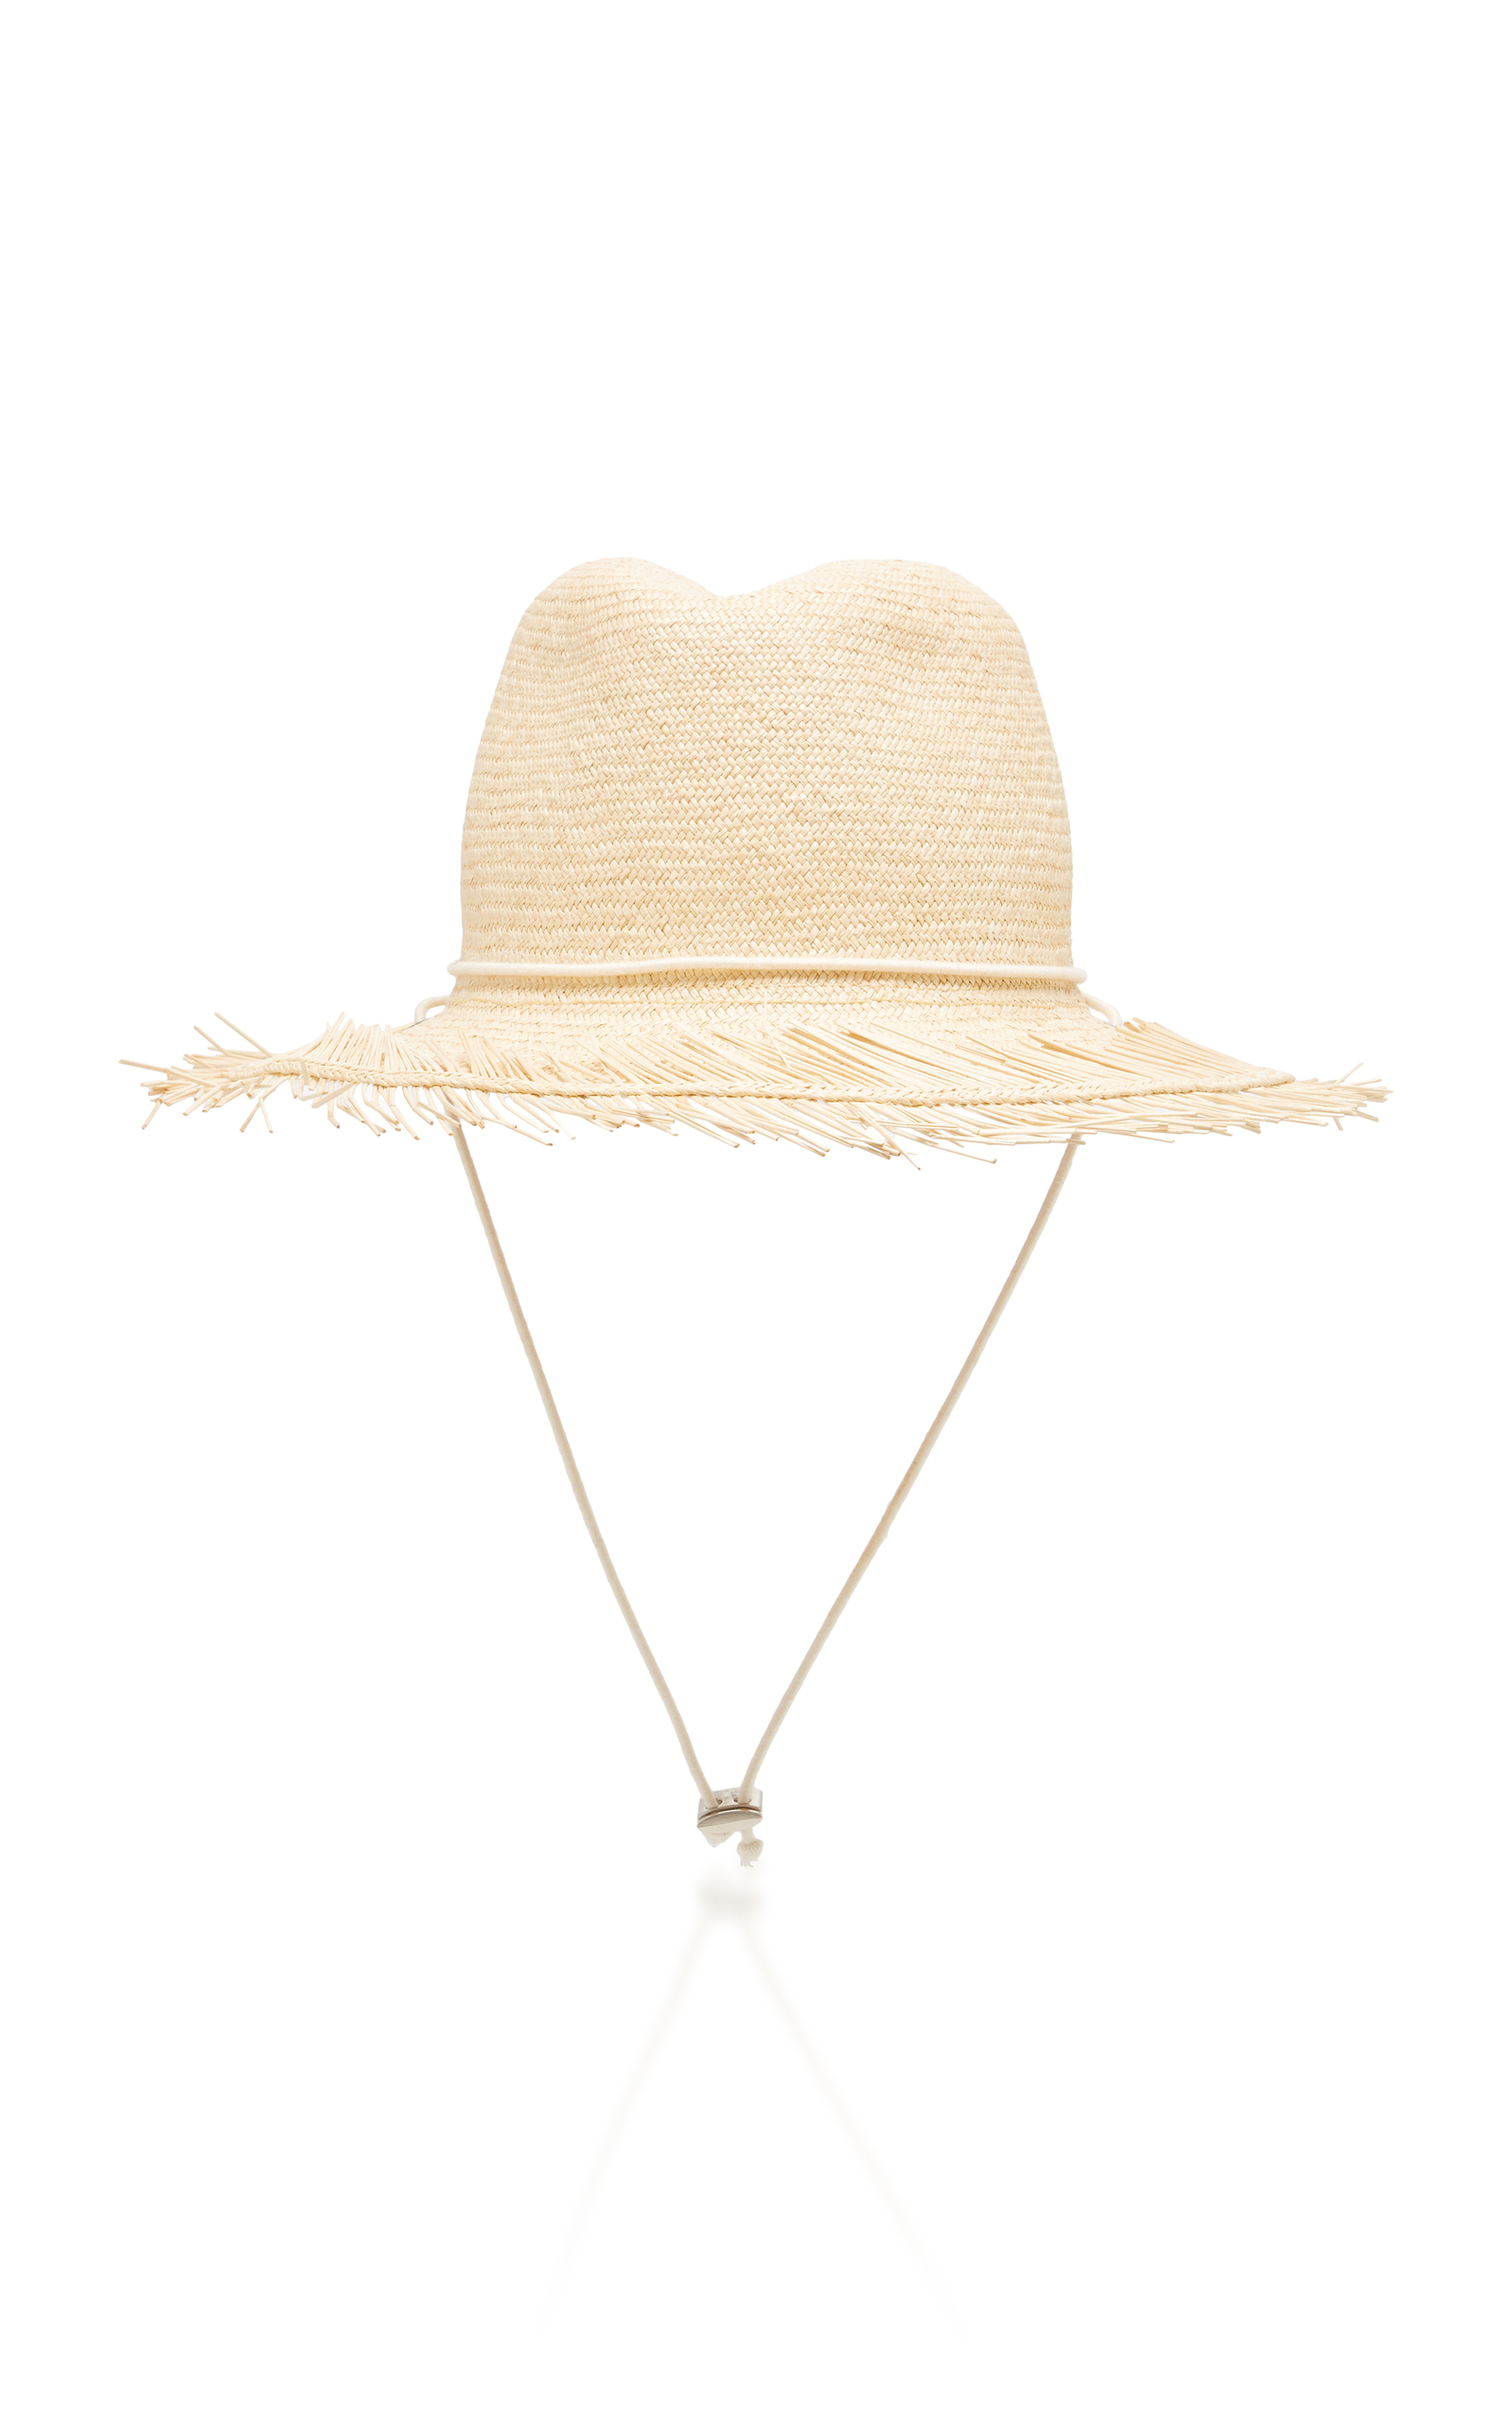 Gulf Hat With Cording And Chin Tie Detail by Gigi  a61437c2cf8